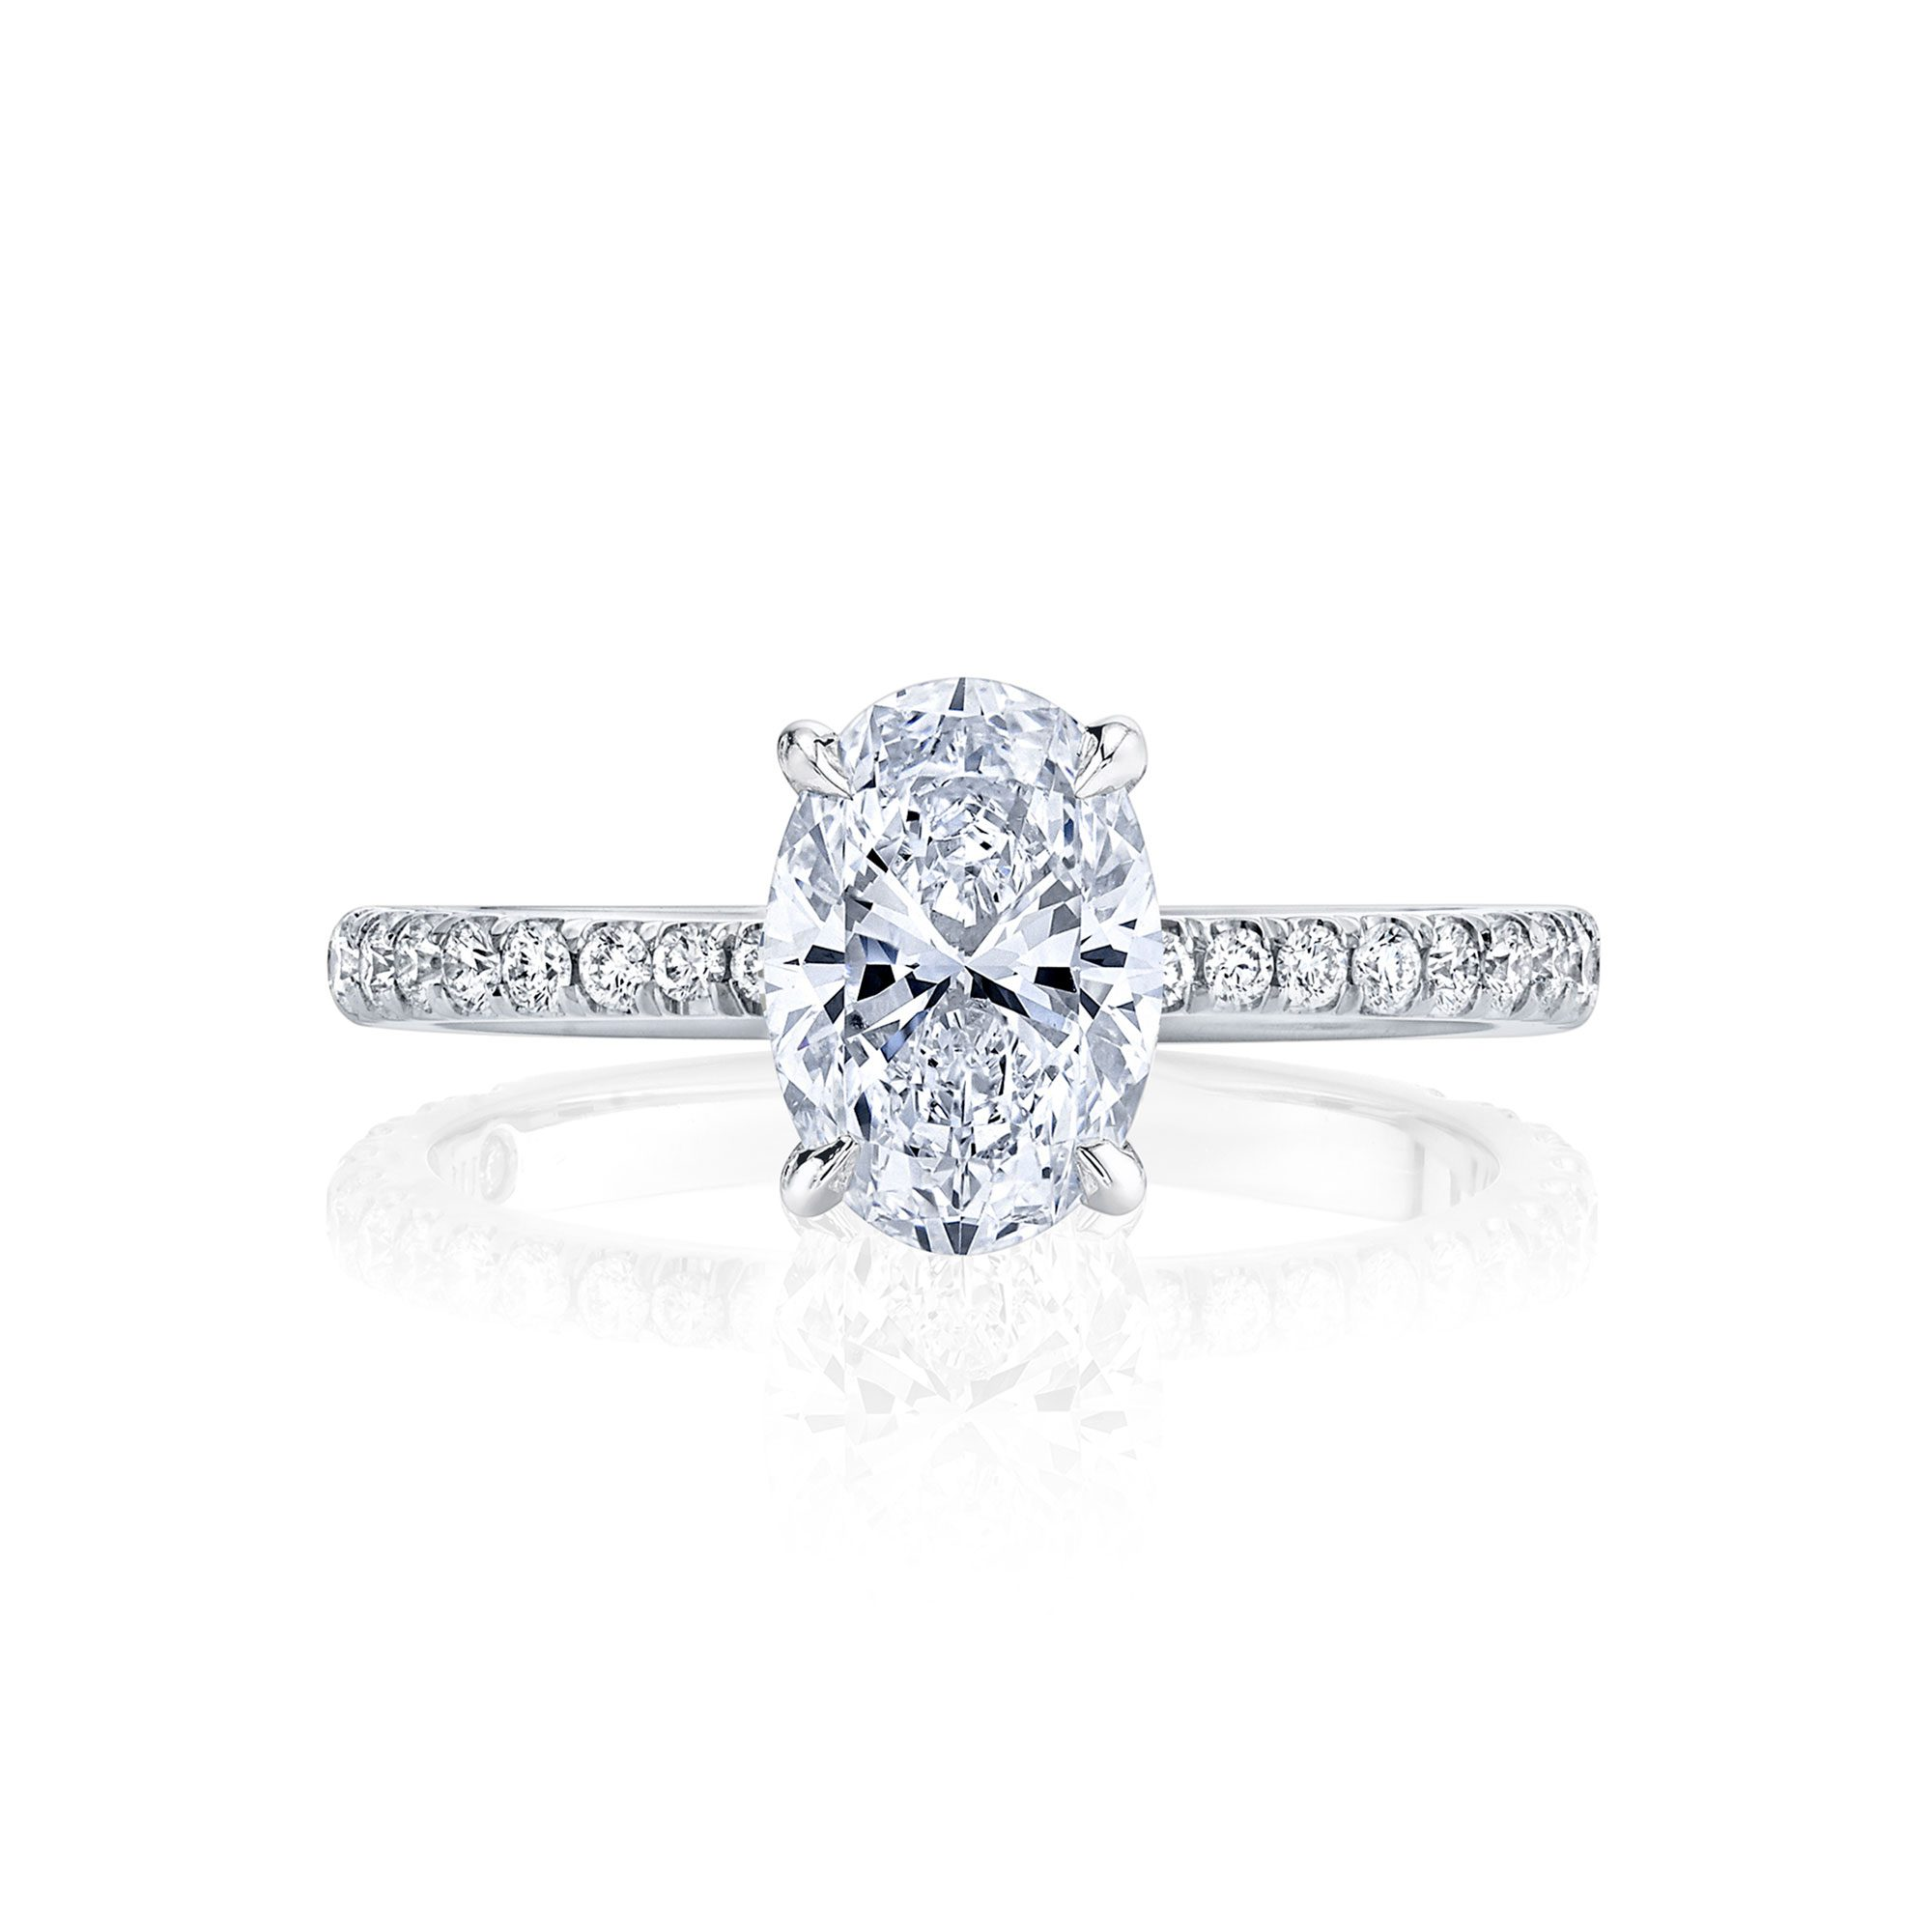 Eloise Oval Solitaire Engagement Ring with a diamond pavé band in 18k White Gold Front View by Oui by Jean Dousset